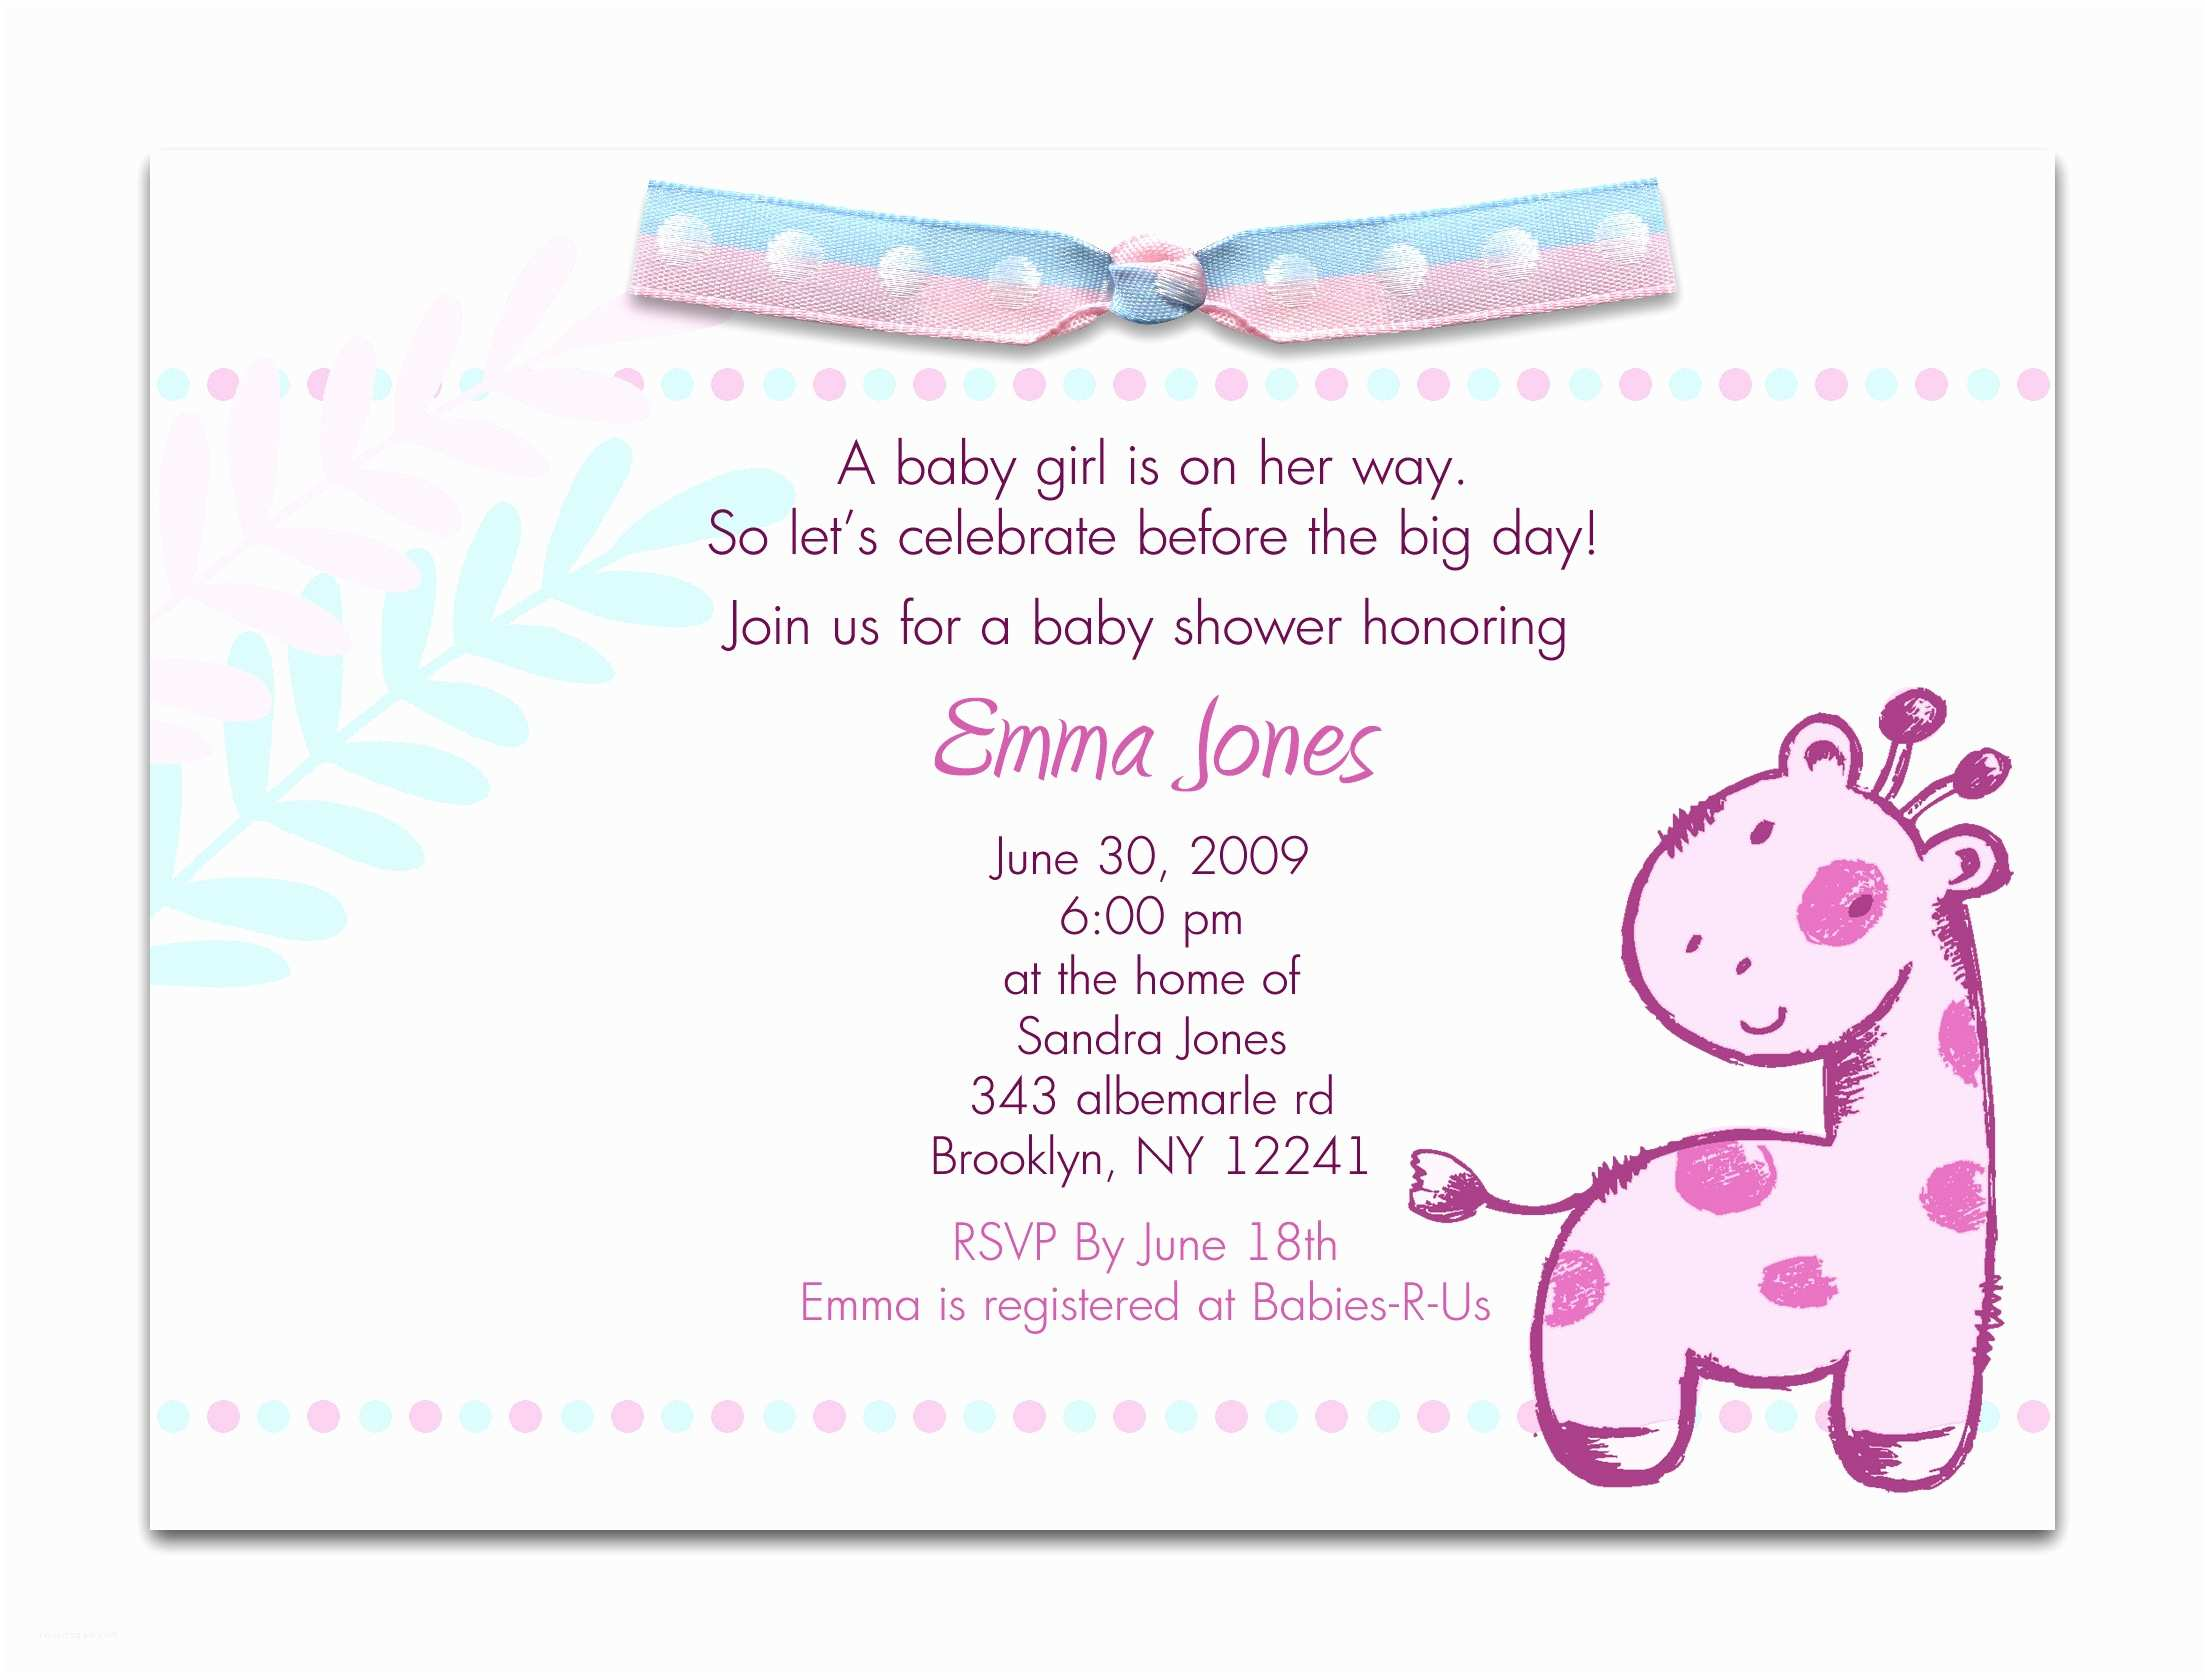 Sample Baby Shower Invitations Baby Shower Invitation Wording for A Girl